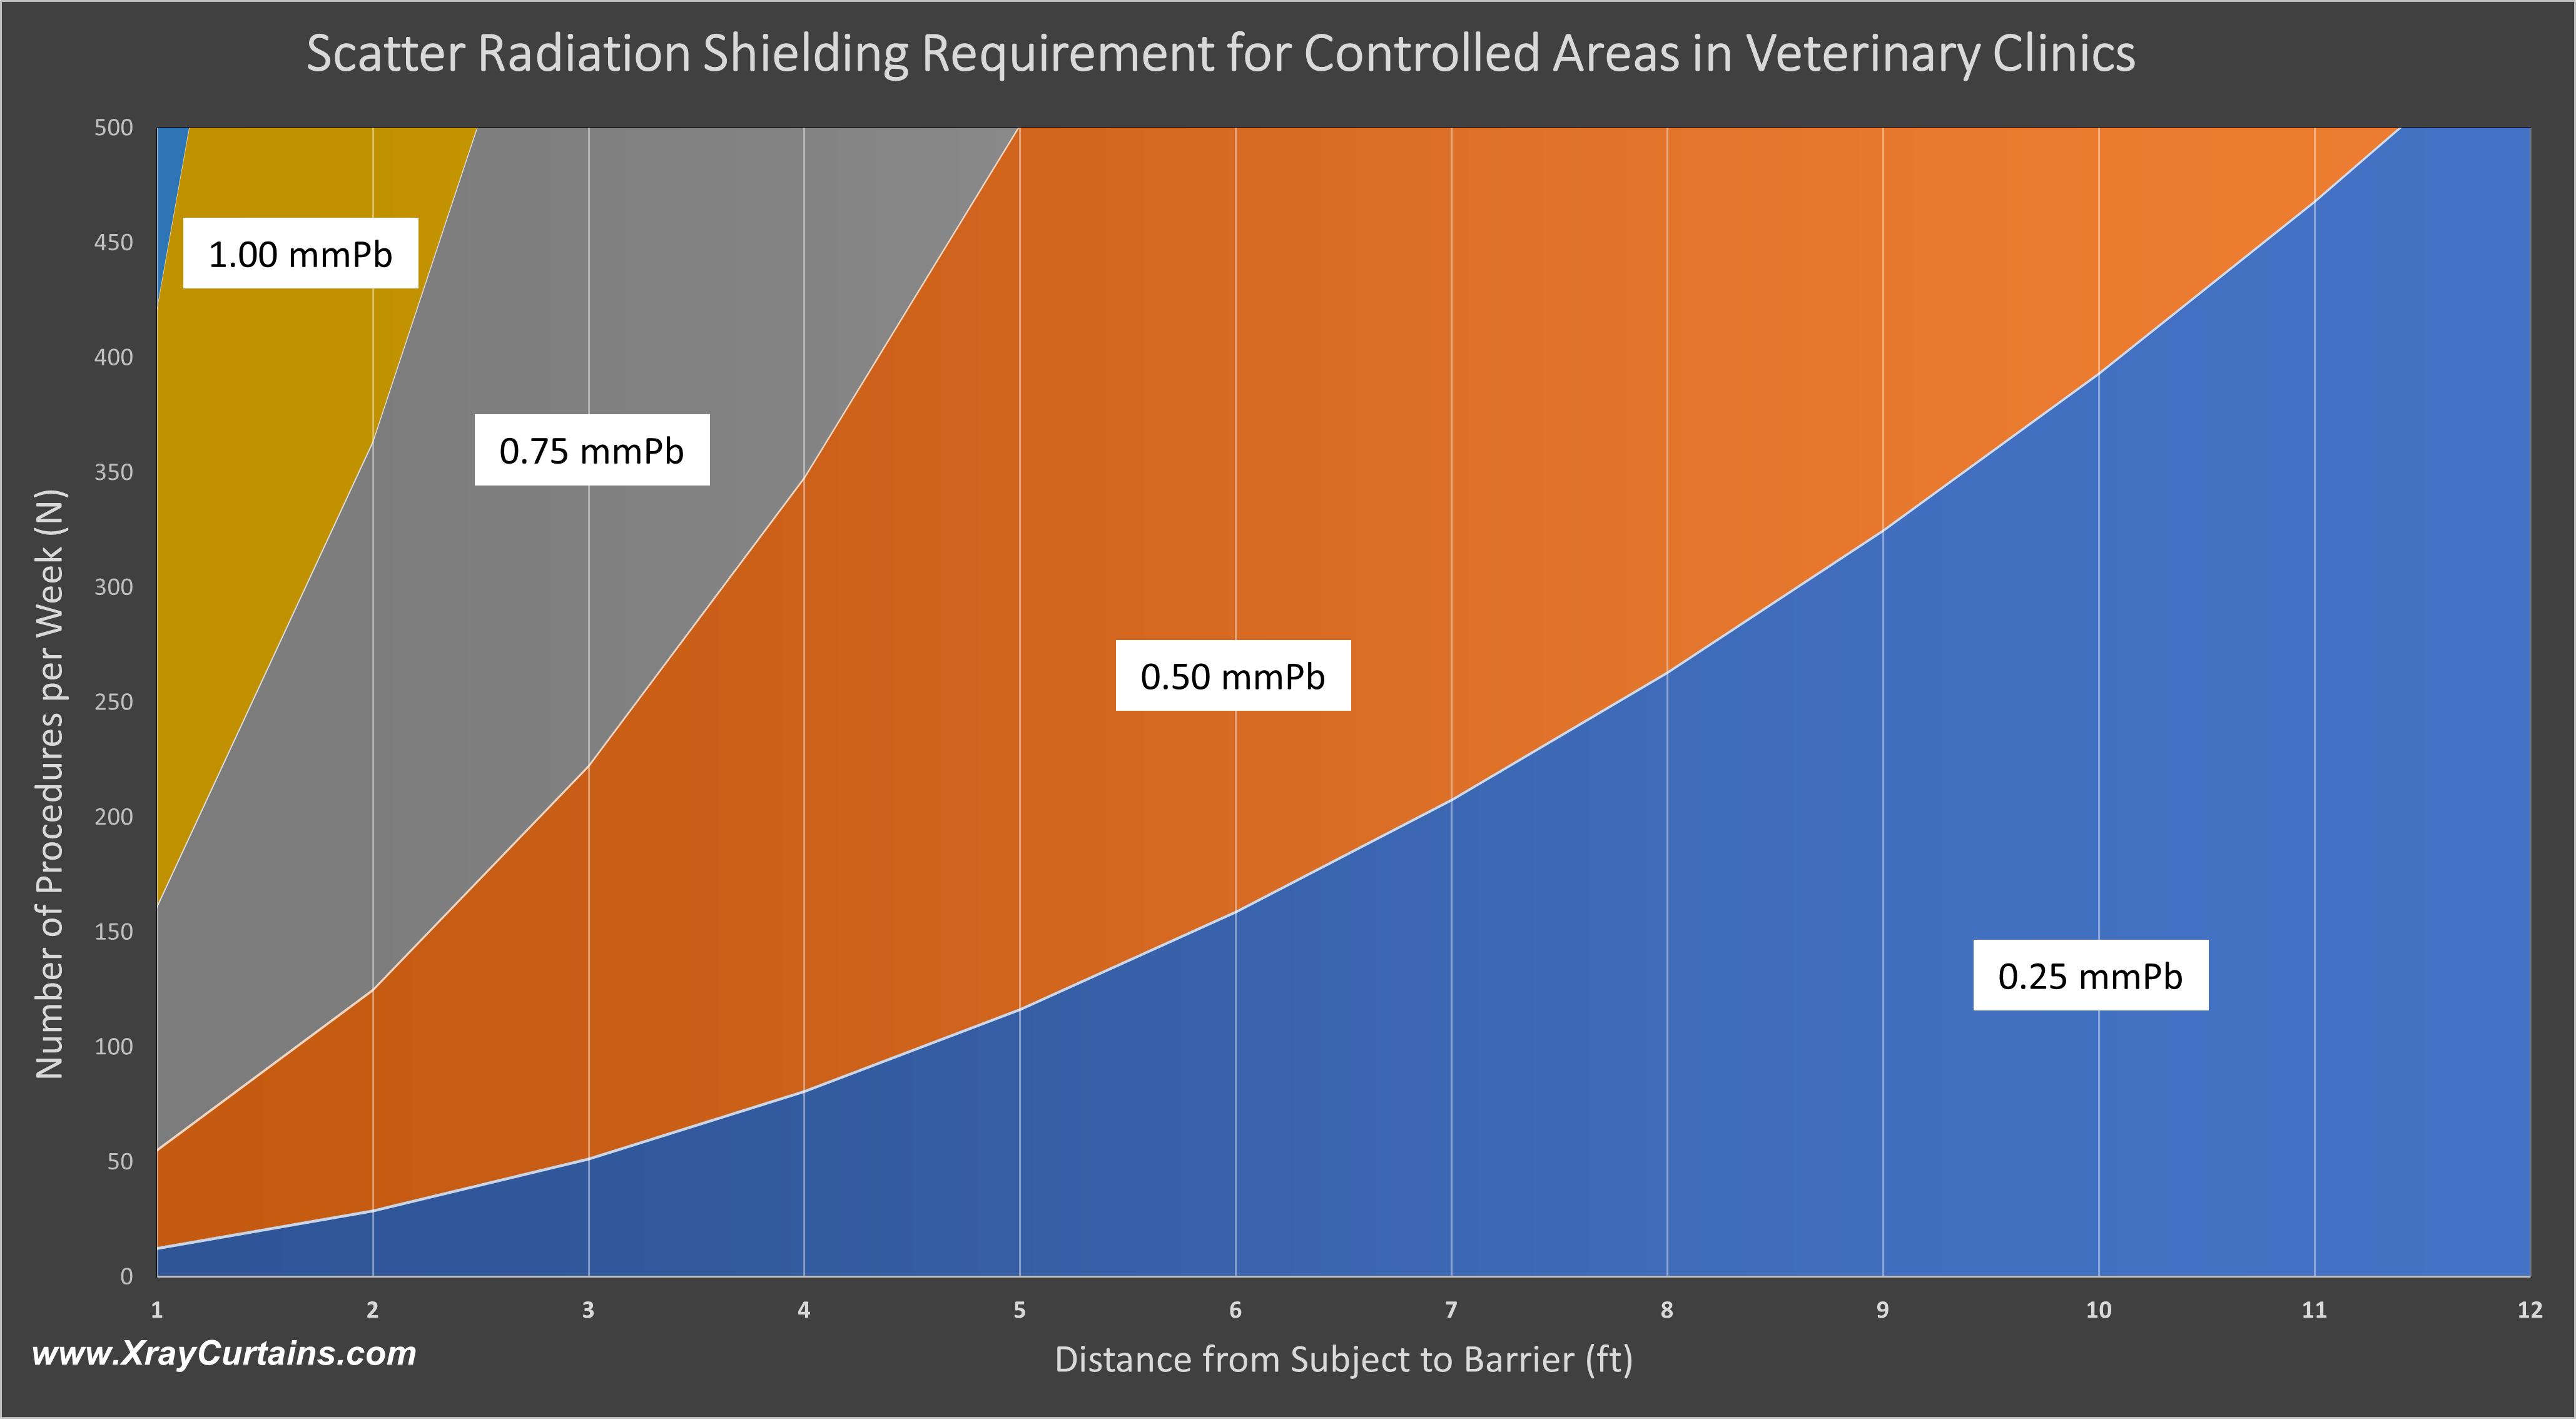 Scatter Radiation Shielding Requirement for Controlled Areas in Veterinary Clinics